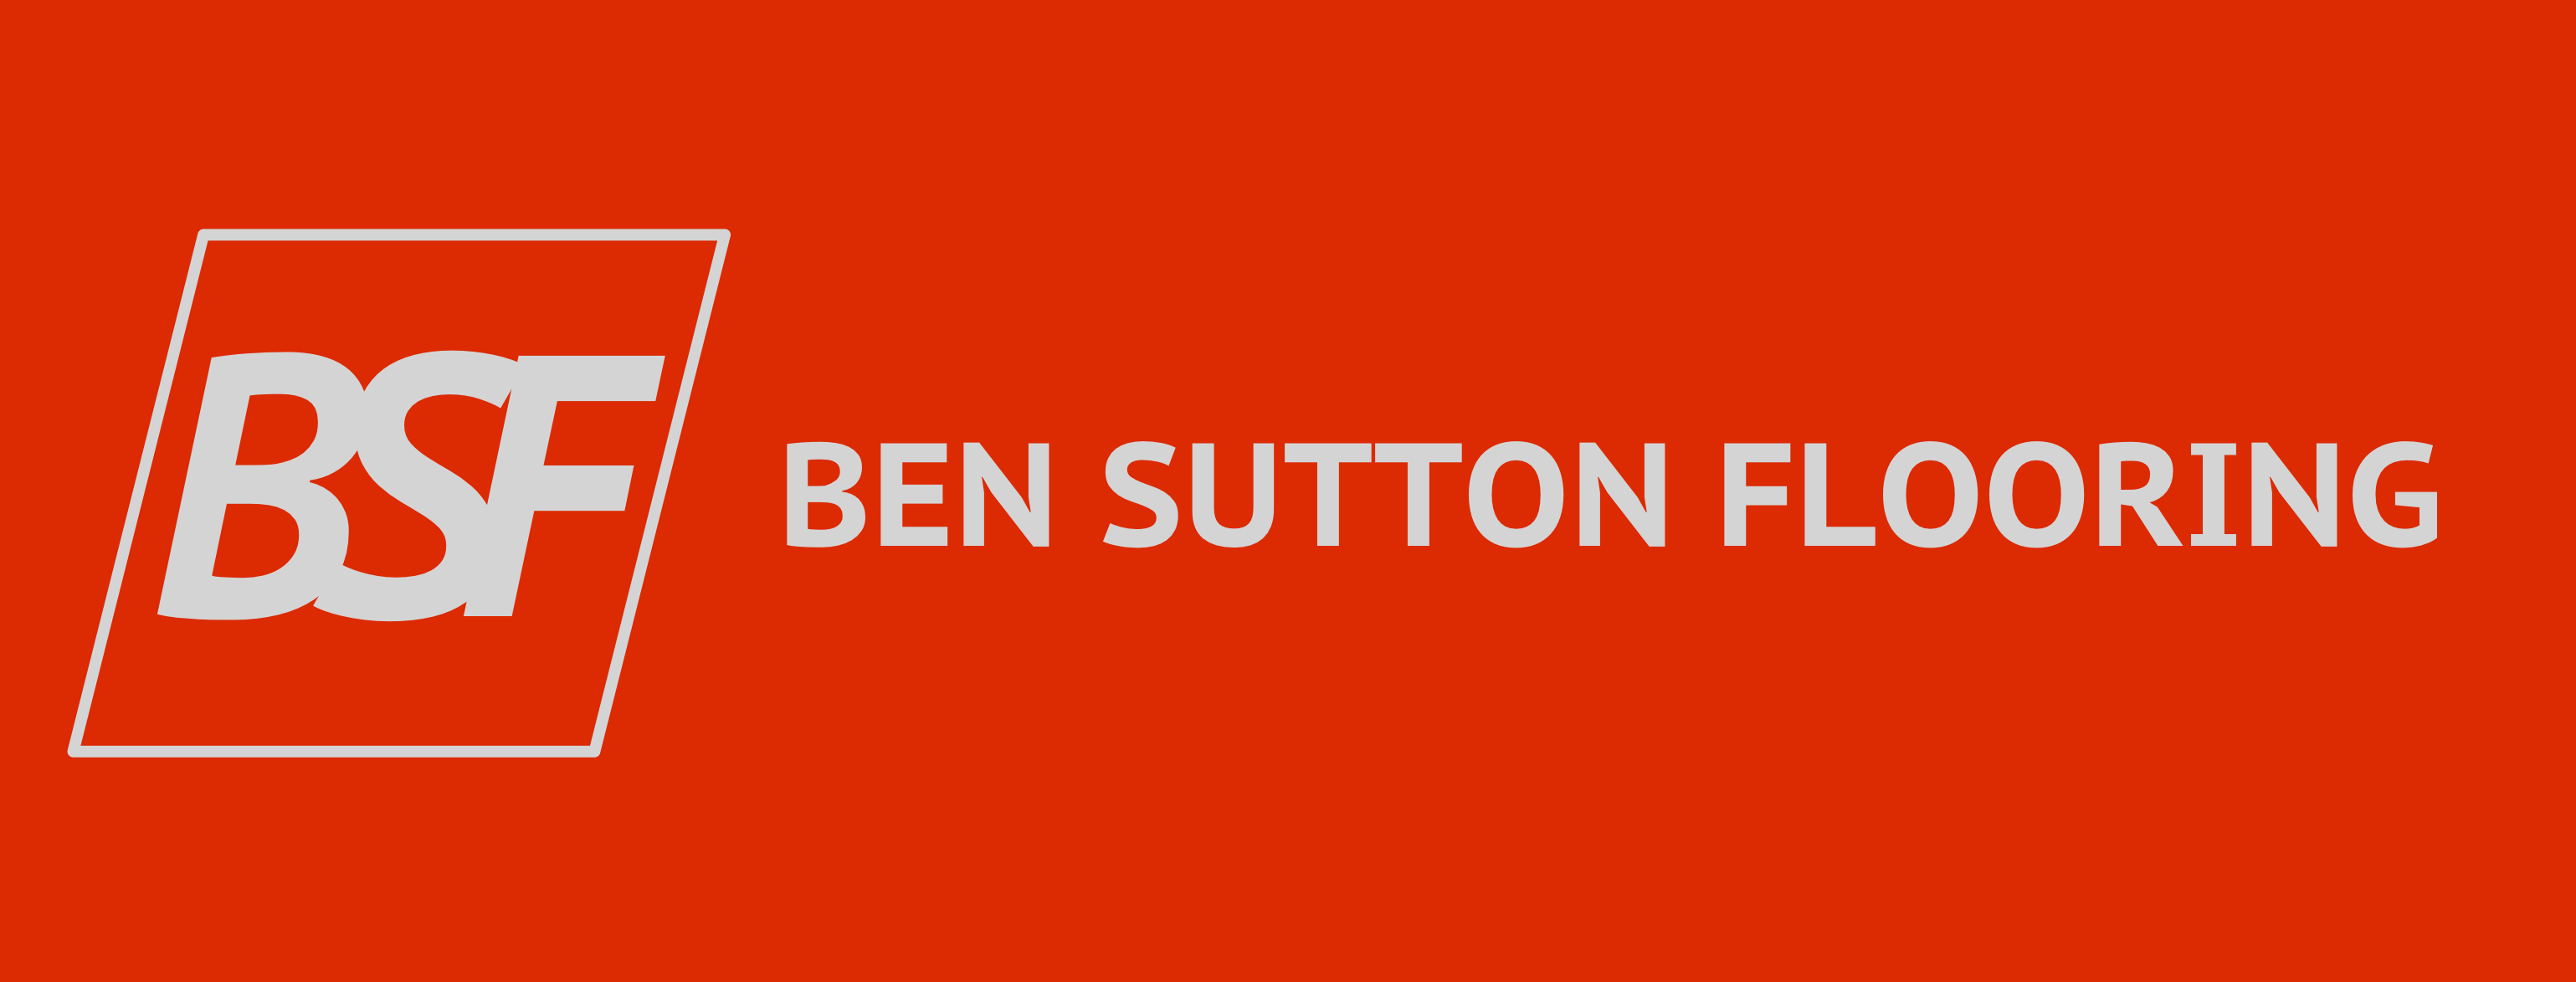 Ben Sutton Flooring